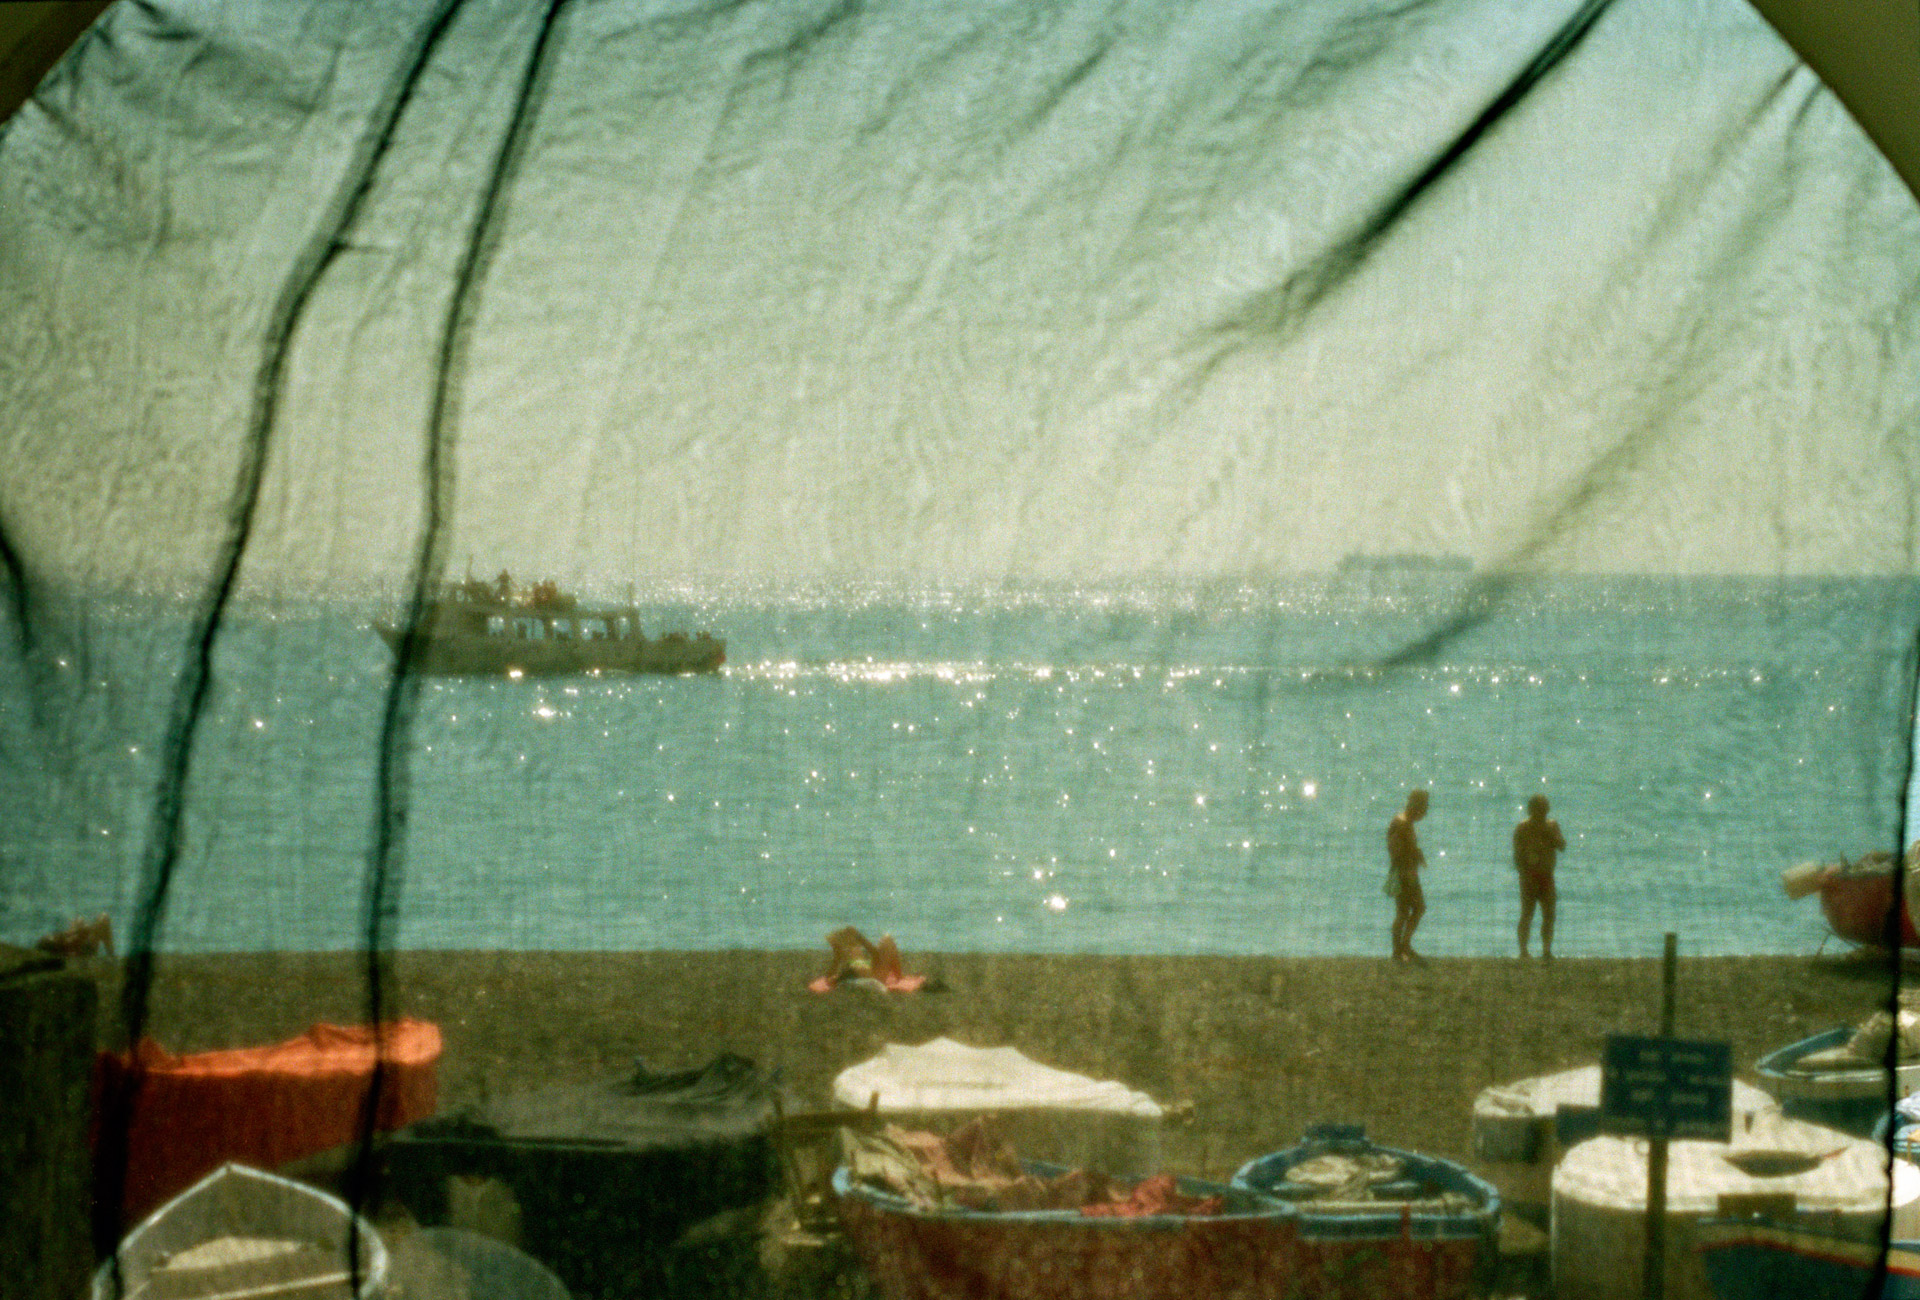 People at the beach seen through a fishing net at the Amalfi coast in Italy